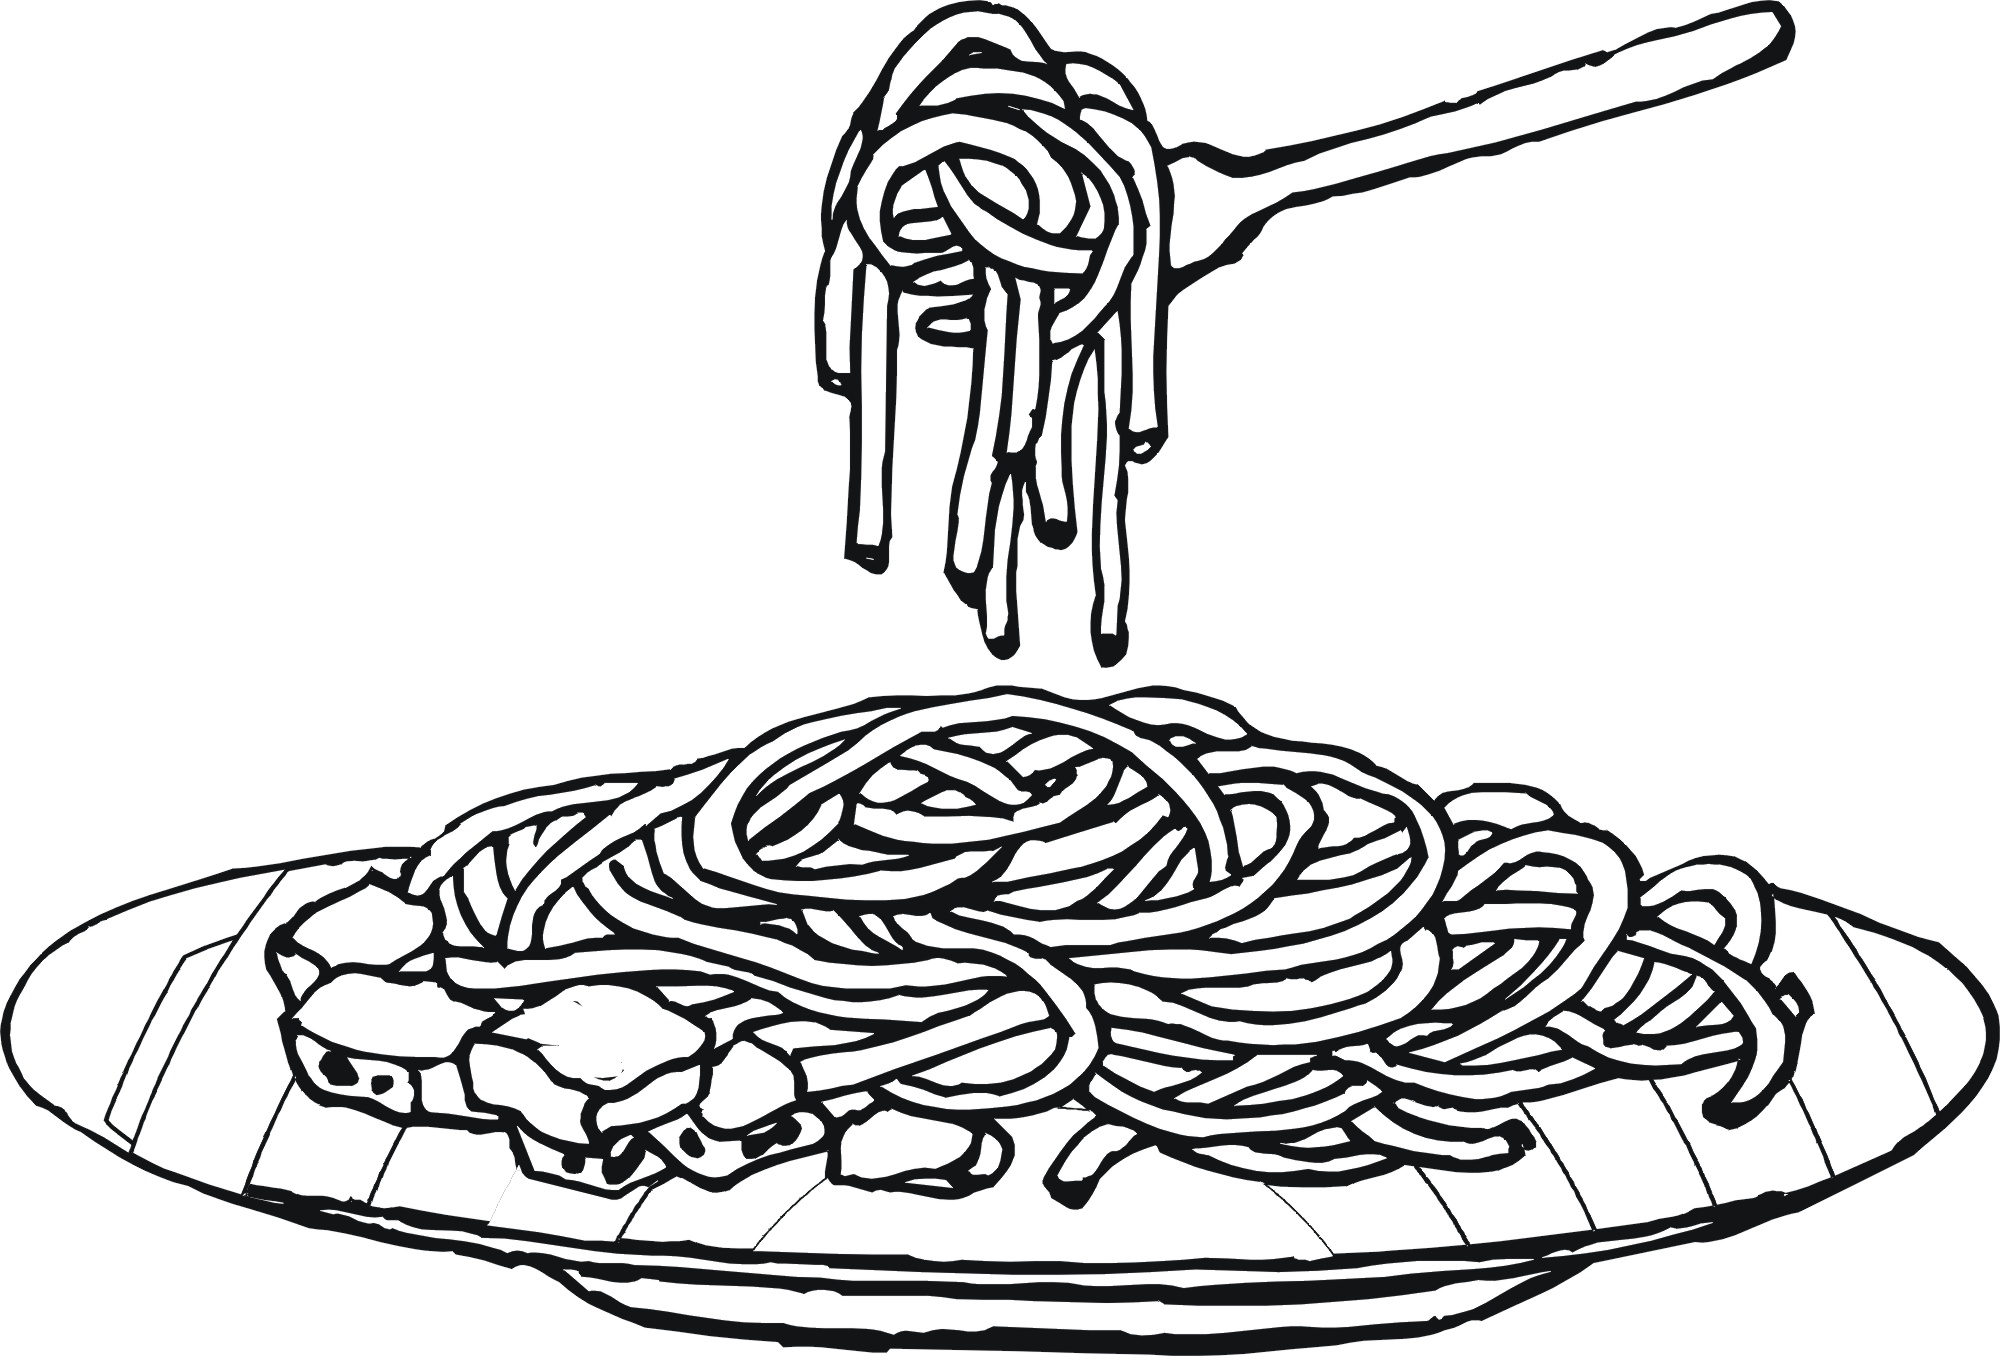 2000x1356 Very Tasty Spaghetti Colouring Pages